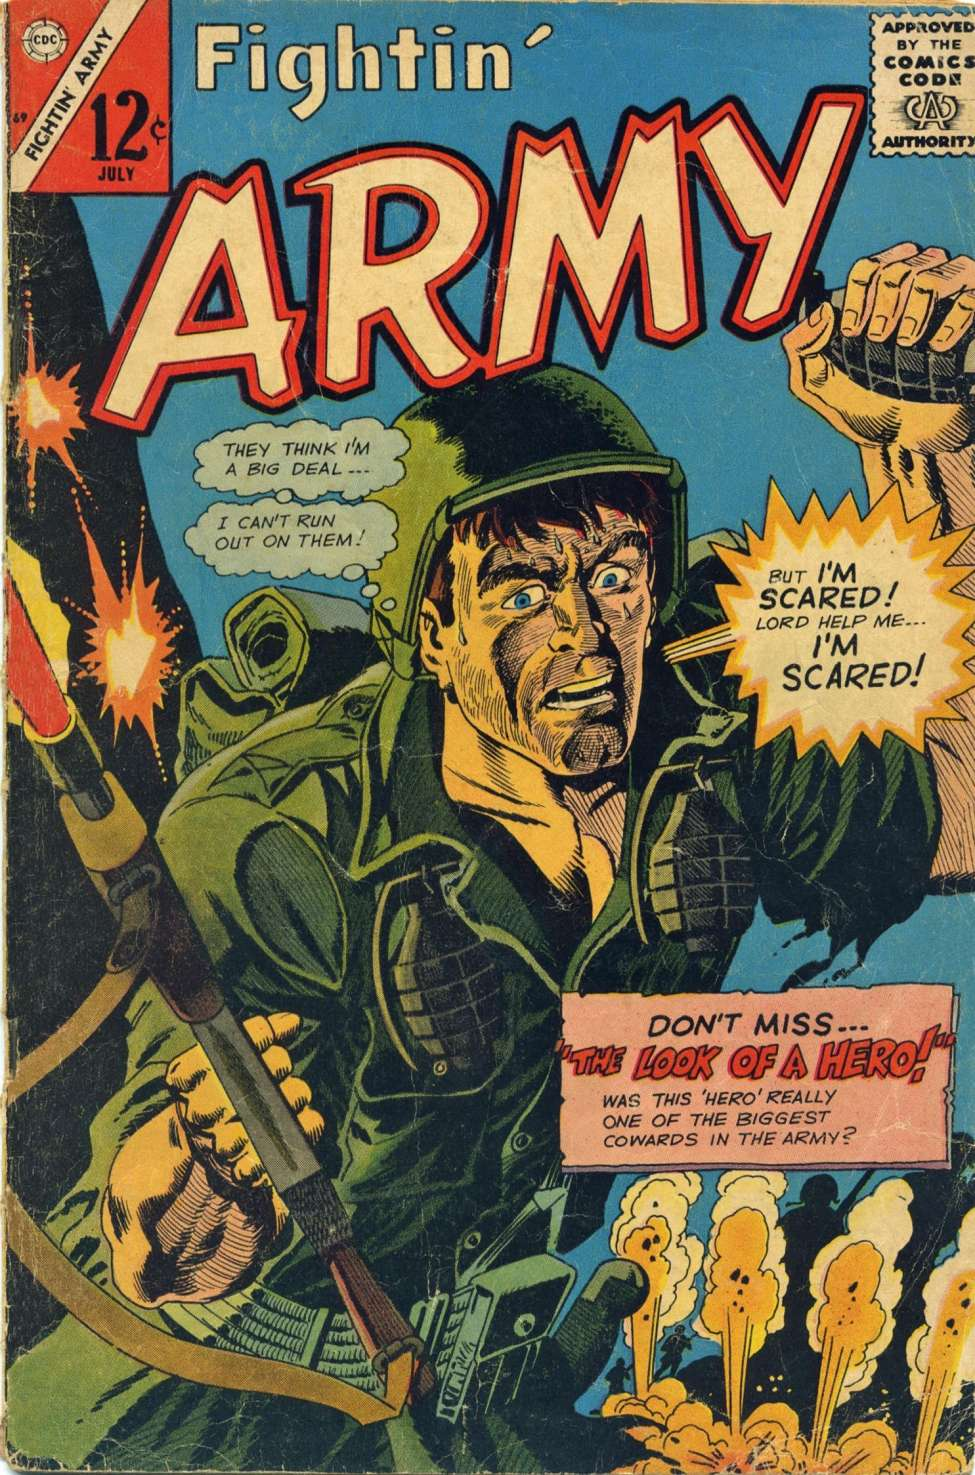 Comic Book Cover For Fightin' Army #69